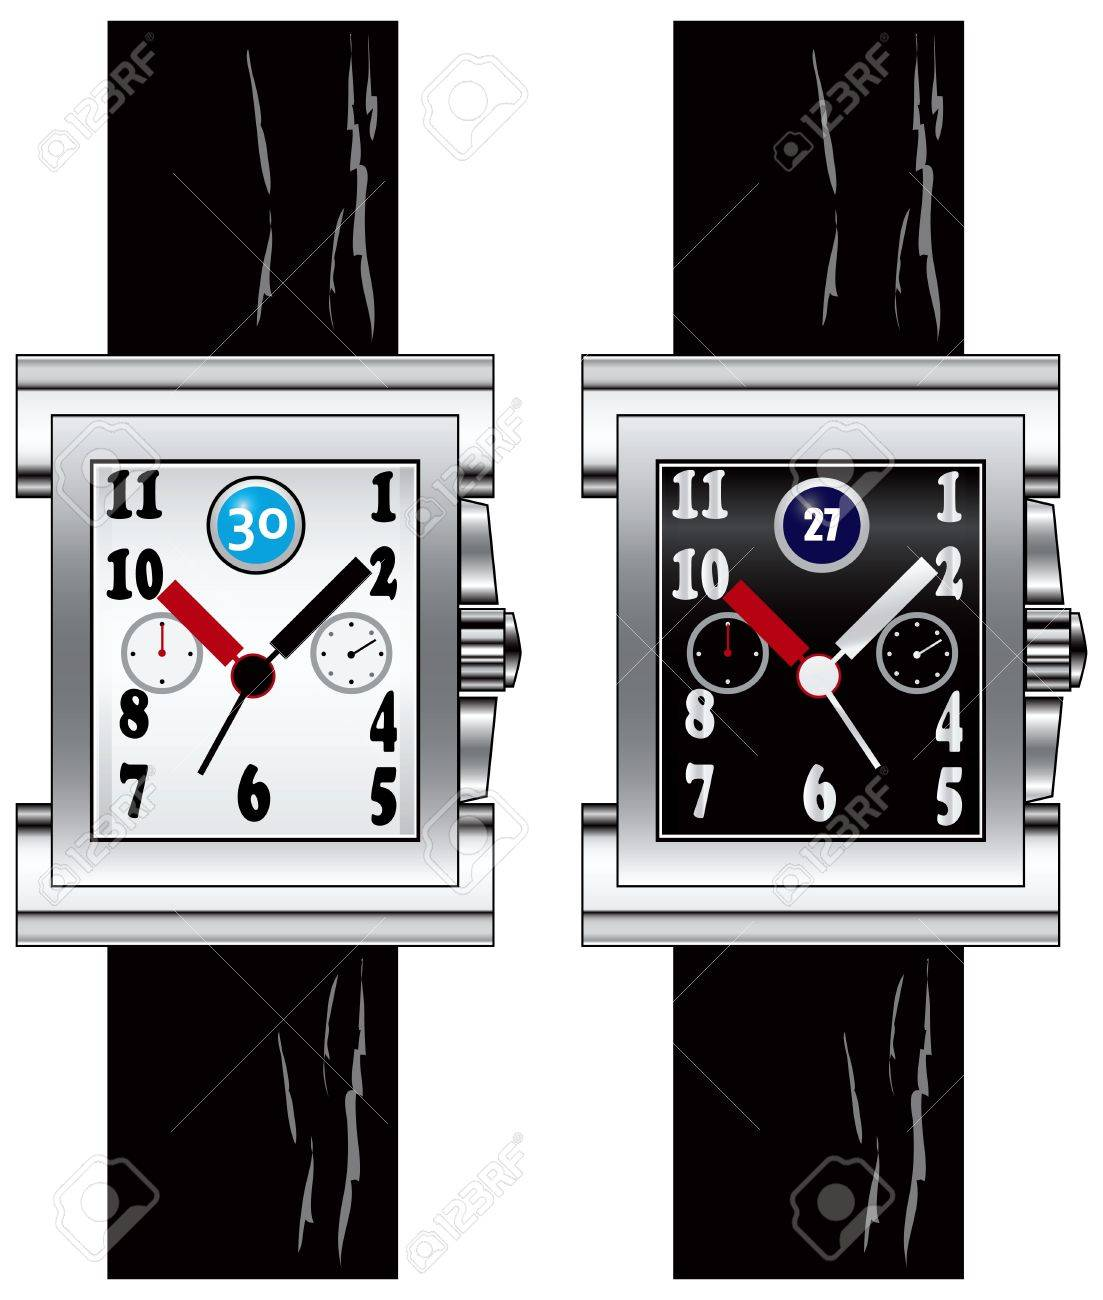 Modern watch on your wrist with a rectangular dial on black leather strap. illustration. Stock Vector - 12498578